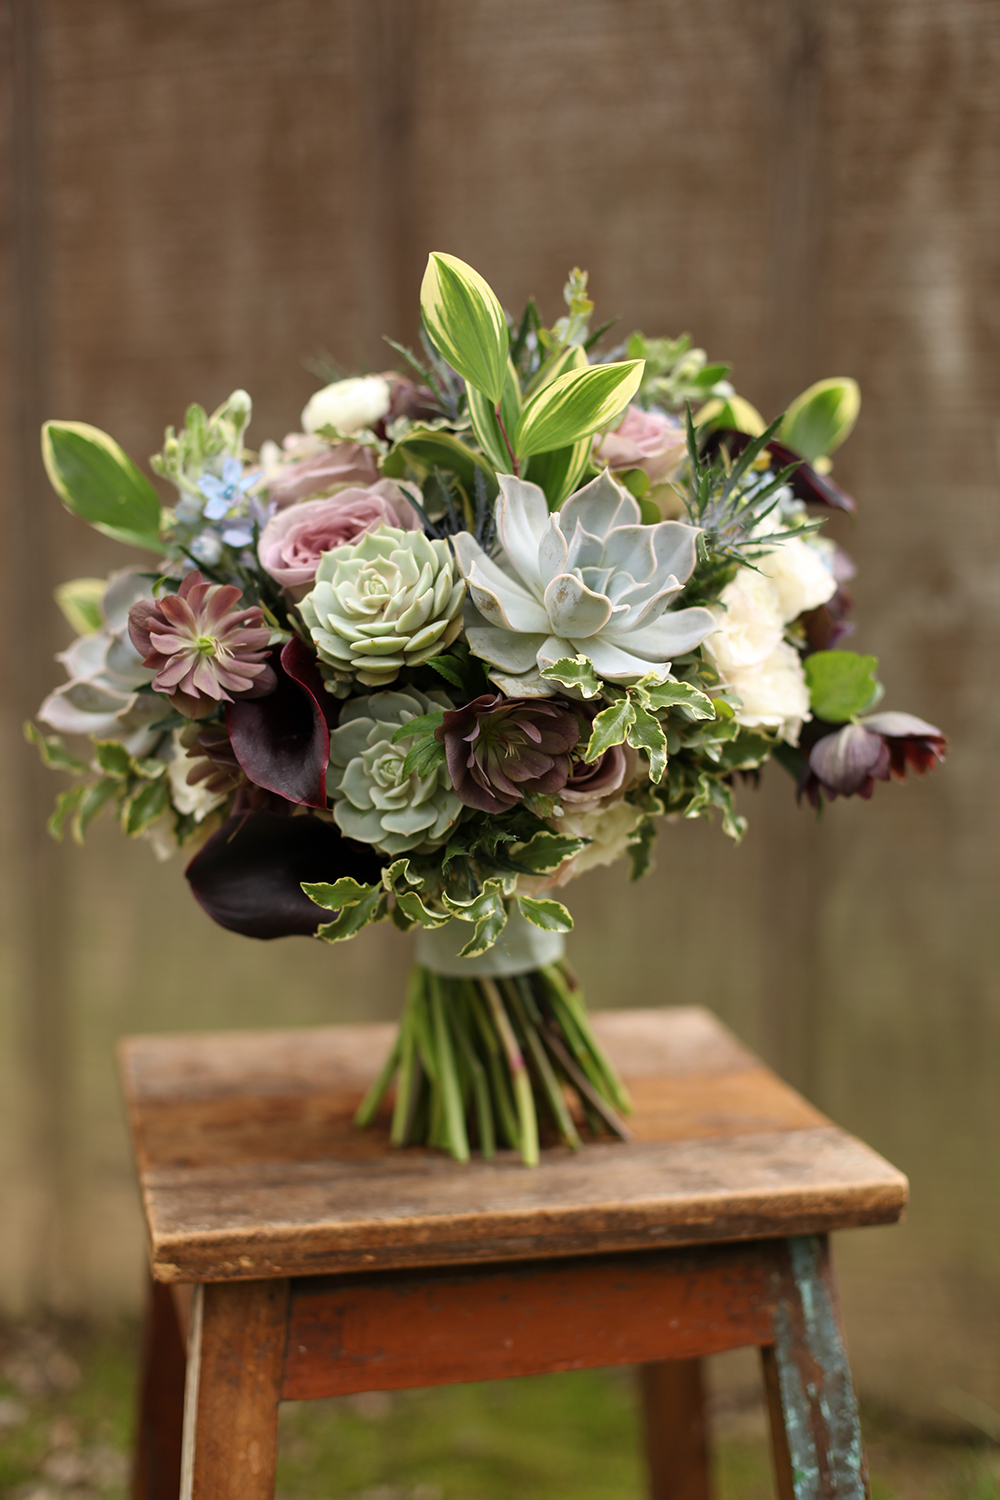 bridal bouquet by wedding florist Floral Verde LLC in Cincinnati, Ohio; with succulents, Schwartzwalder mini callas, double purple hellebores, Amnesia rose, Echeveria 'Lilacina', Echeveria 'Lola', blue tweedia, thistle, White Majolica spray roses, white ranunculus, gunnii eucalyptus, mini variegated pittosporum and variegated Solomon's Seal, with a vintage ribbon wrap.